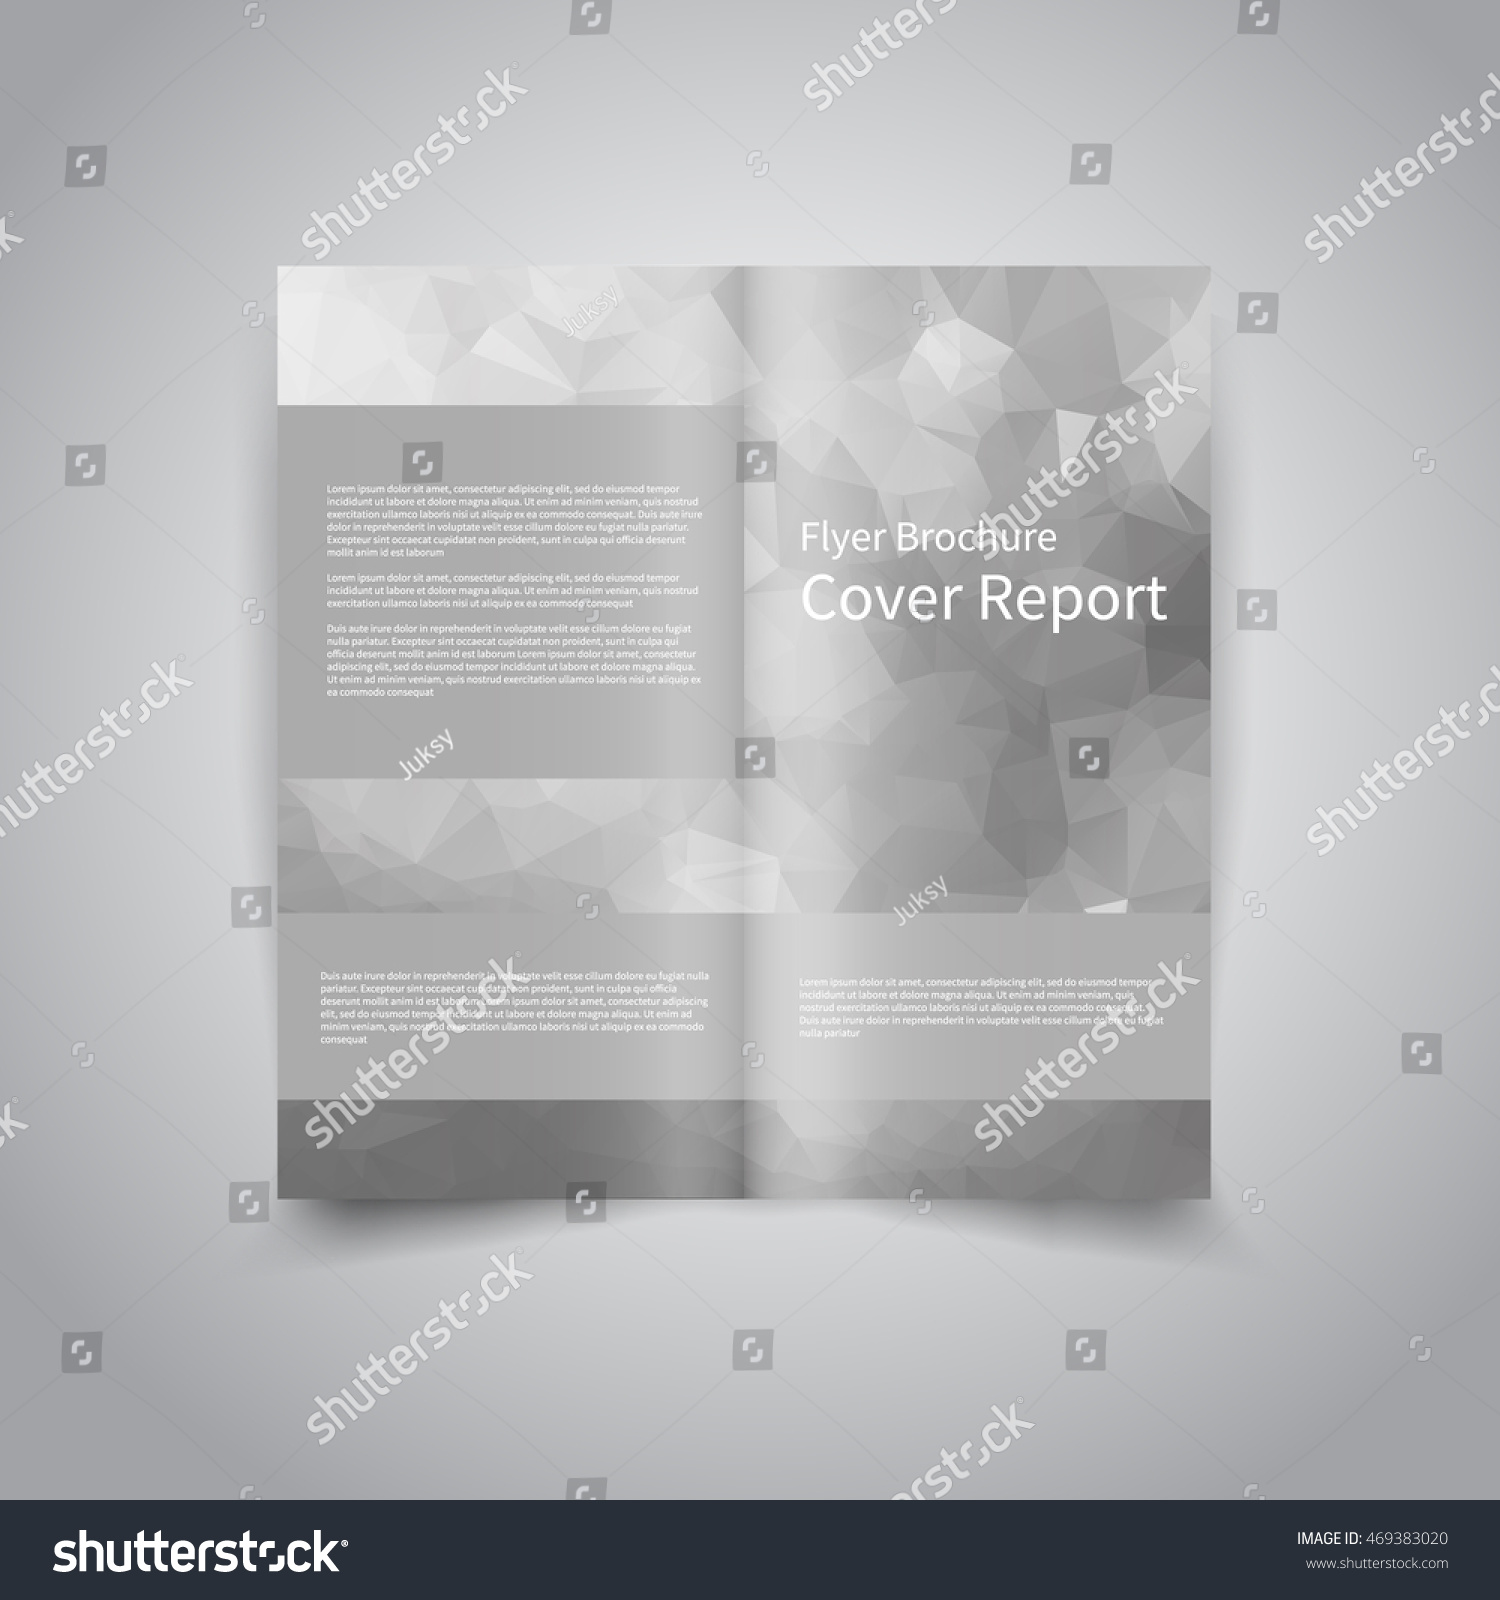 Vector twofold brochure design template abstract stock for Two fold brochure design